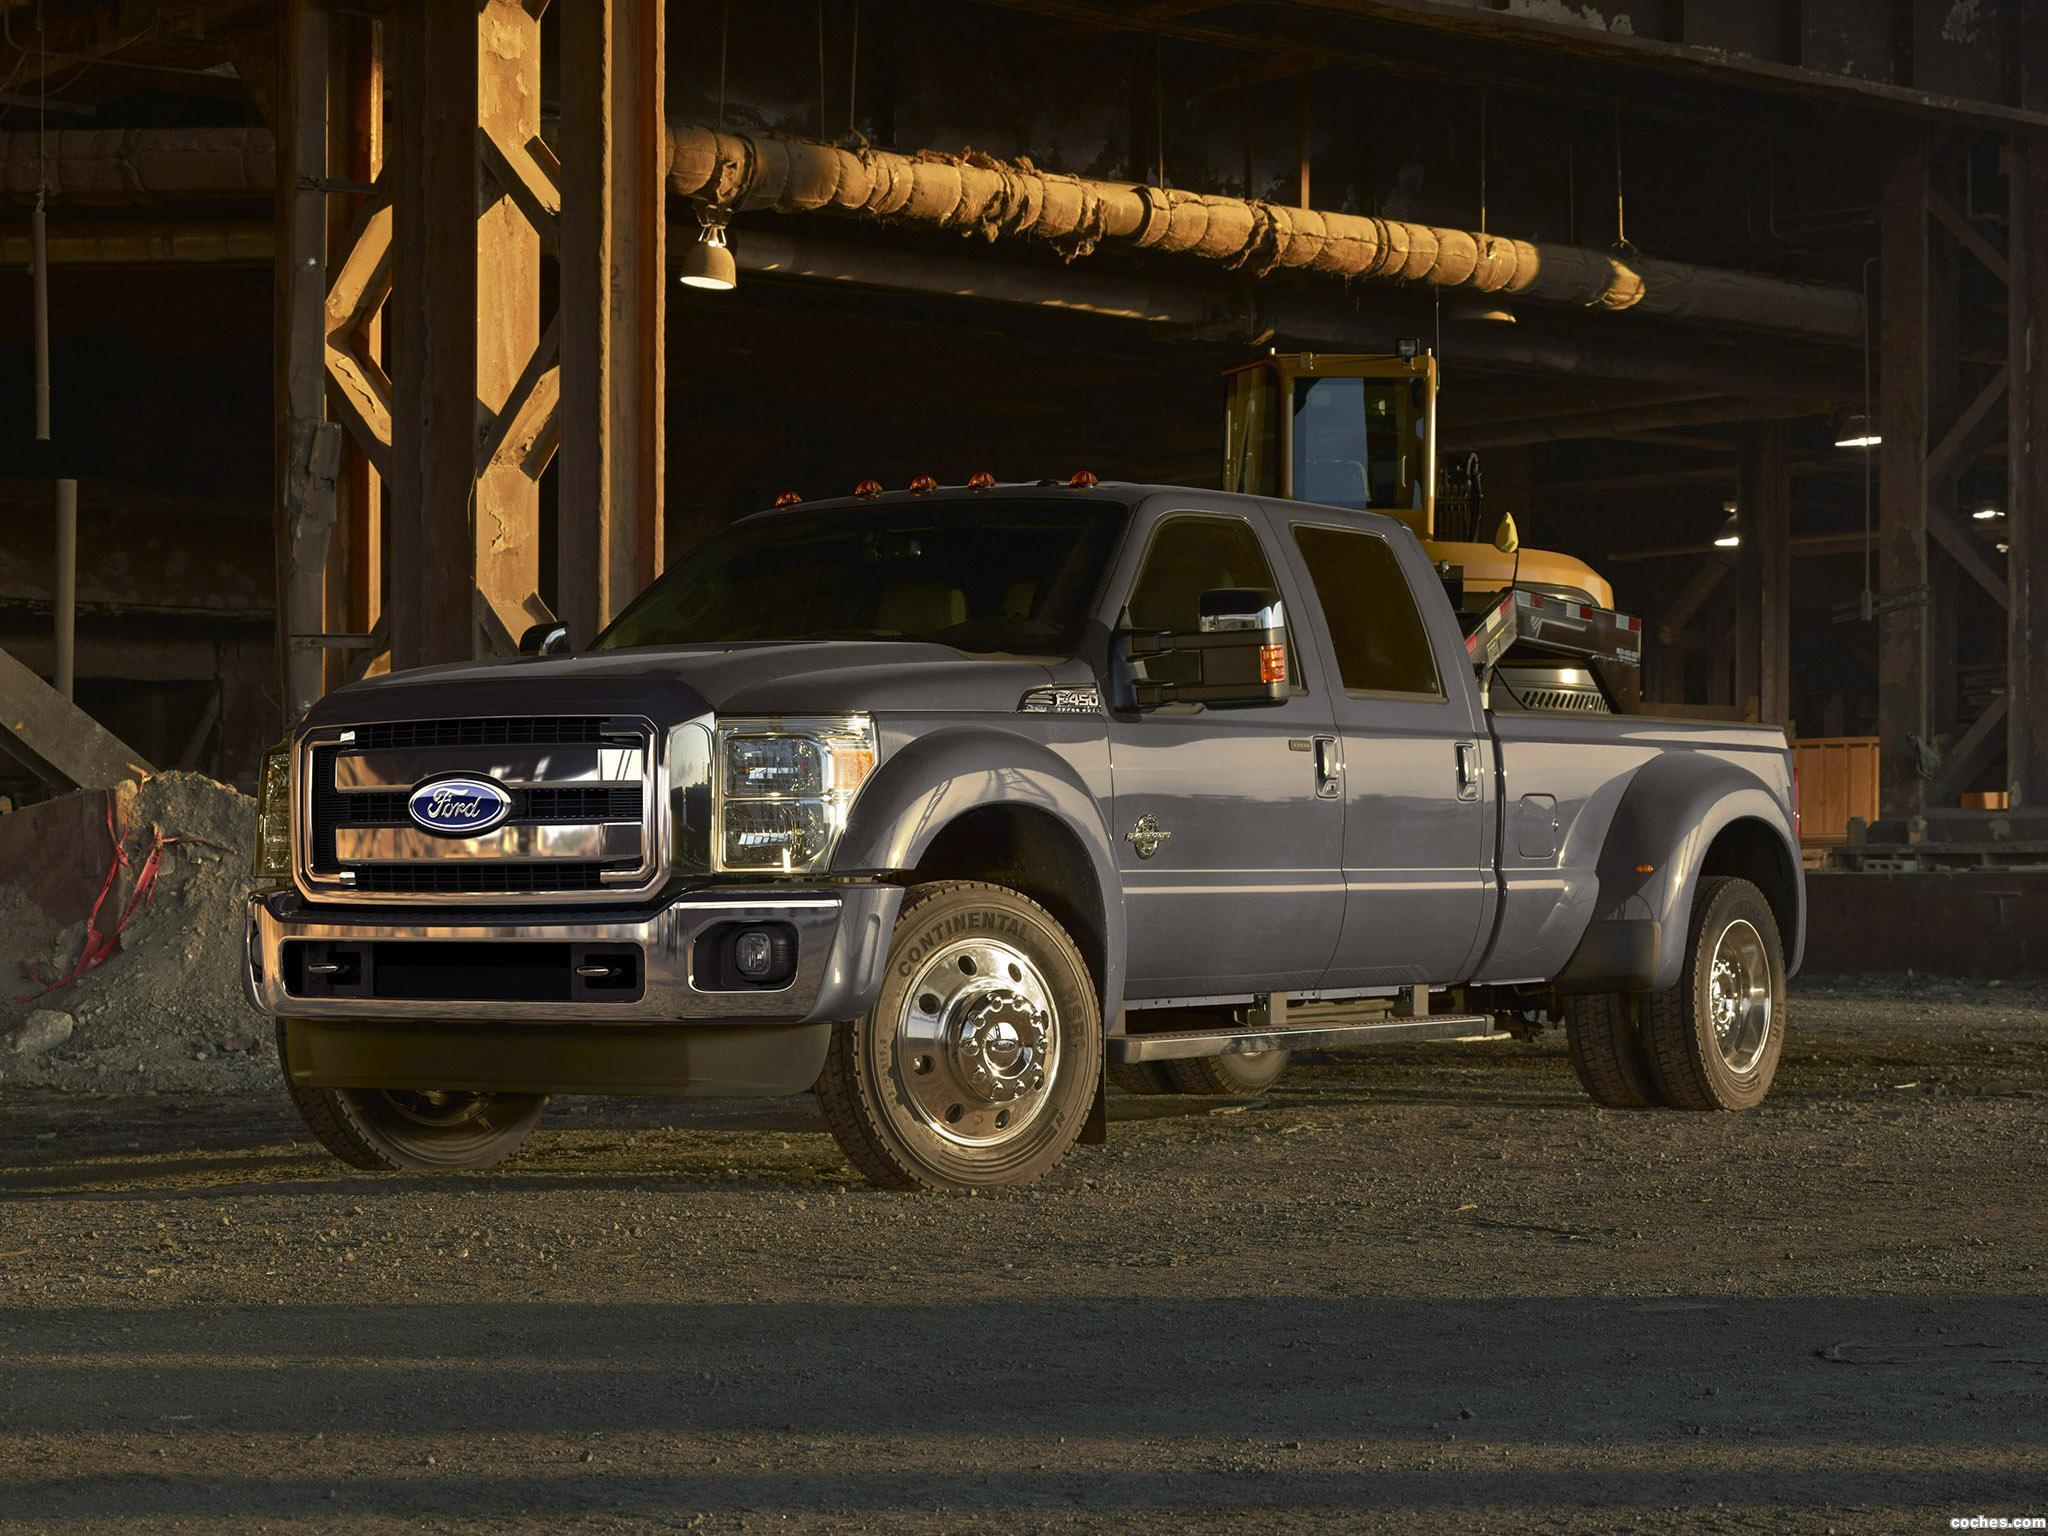 Foto 1 de Ford F-450 Super Duty 2014